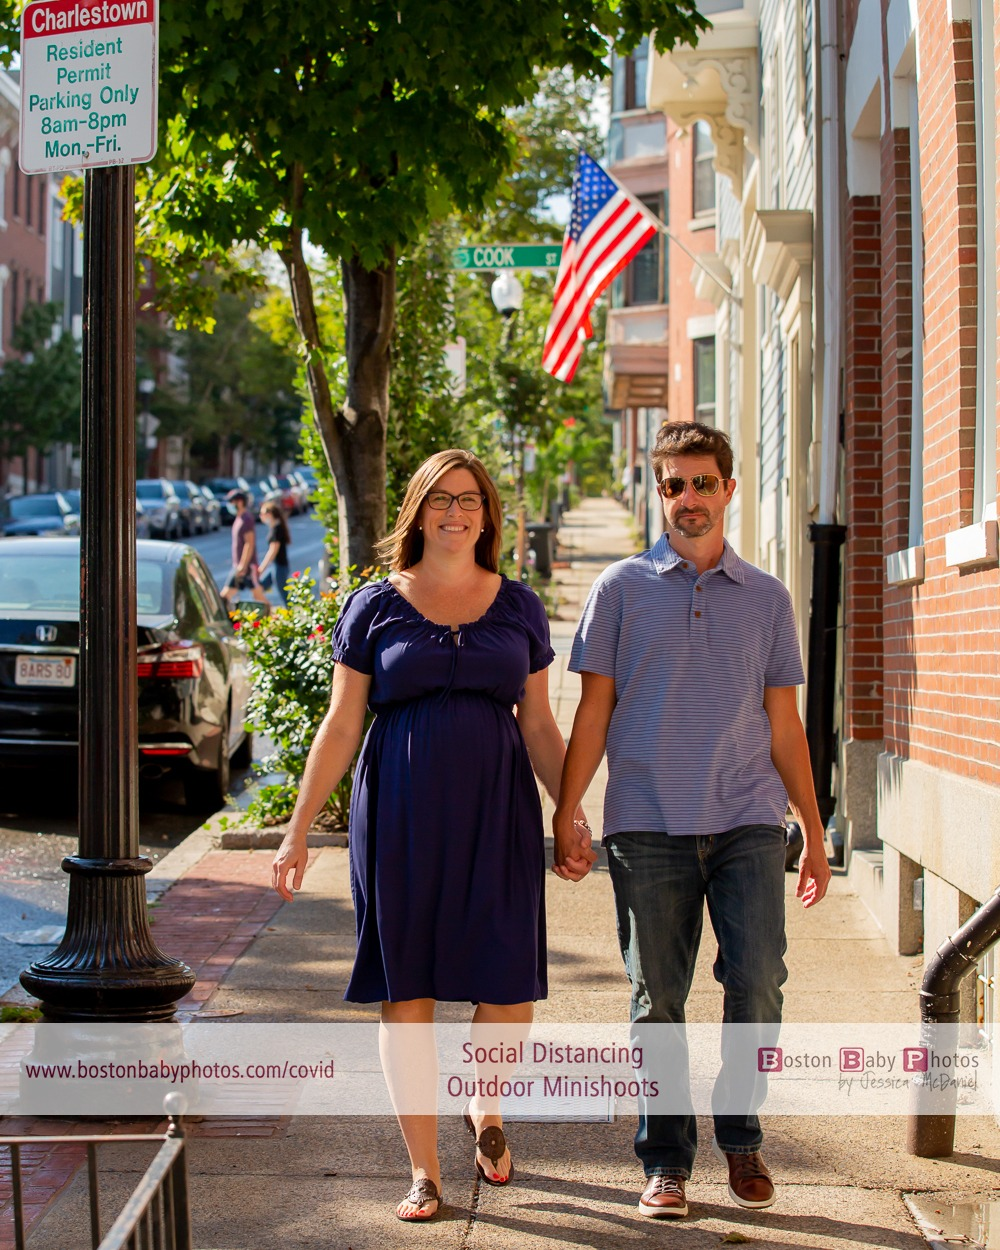 Charlestown, MA - Maternity photos and a social distancing walk